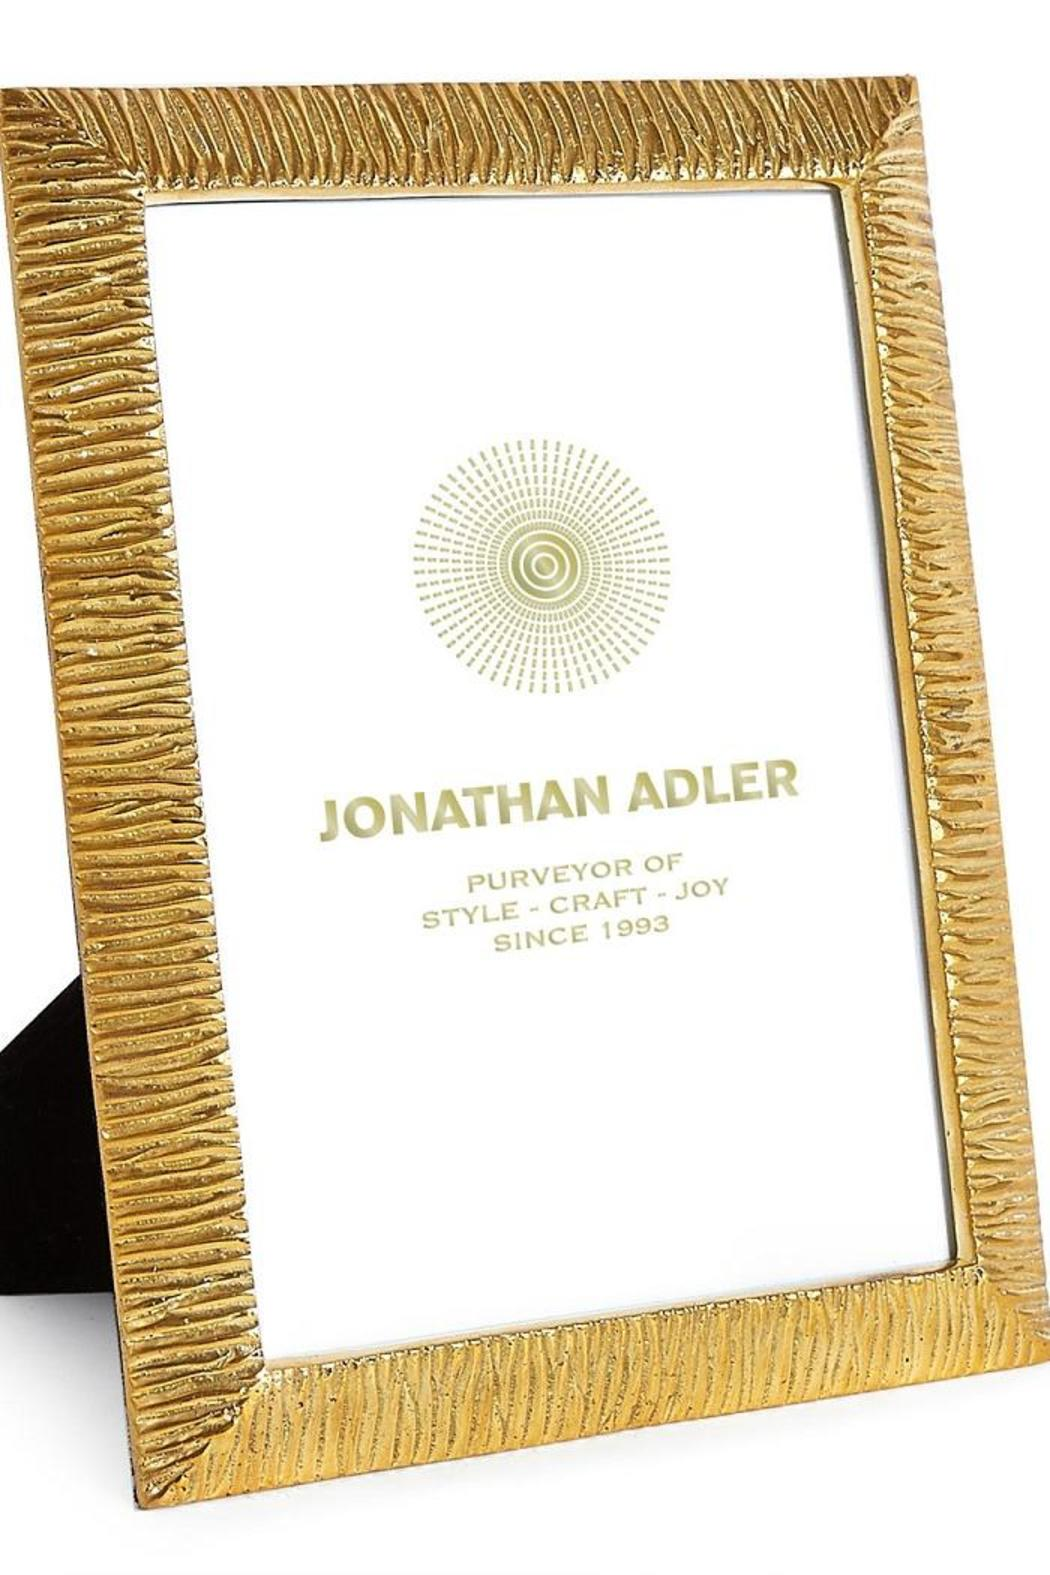 Jonathan Adler Brass Frame 5x7 from Texas by Hyacinth — Shoptiques